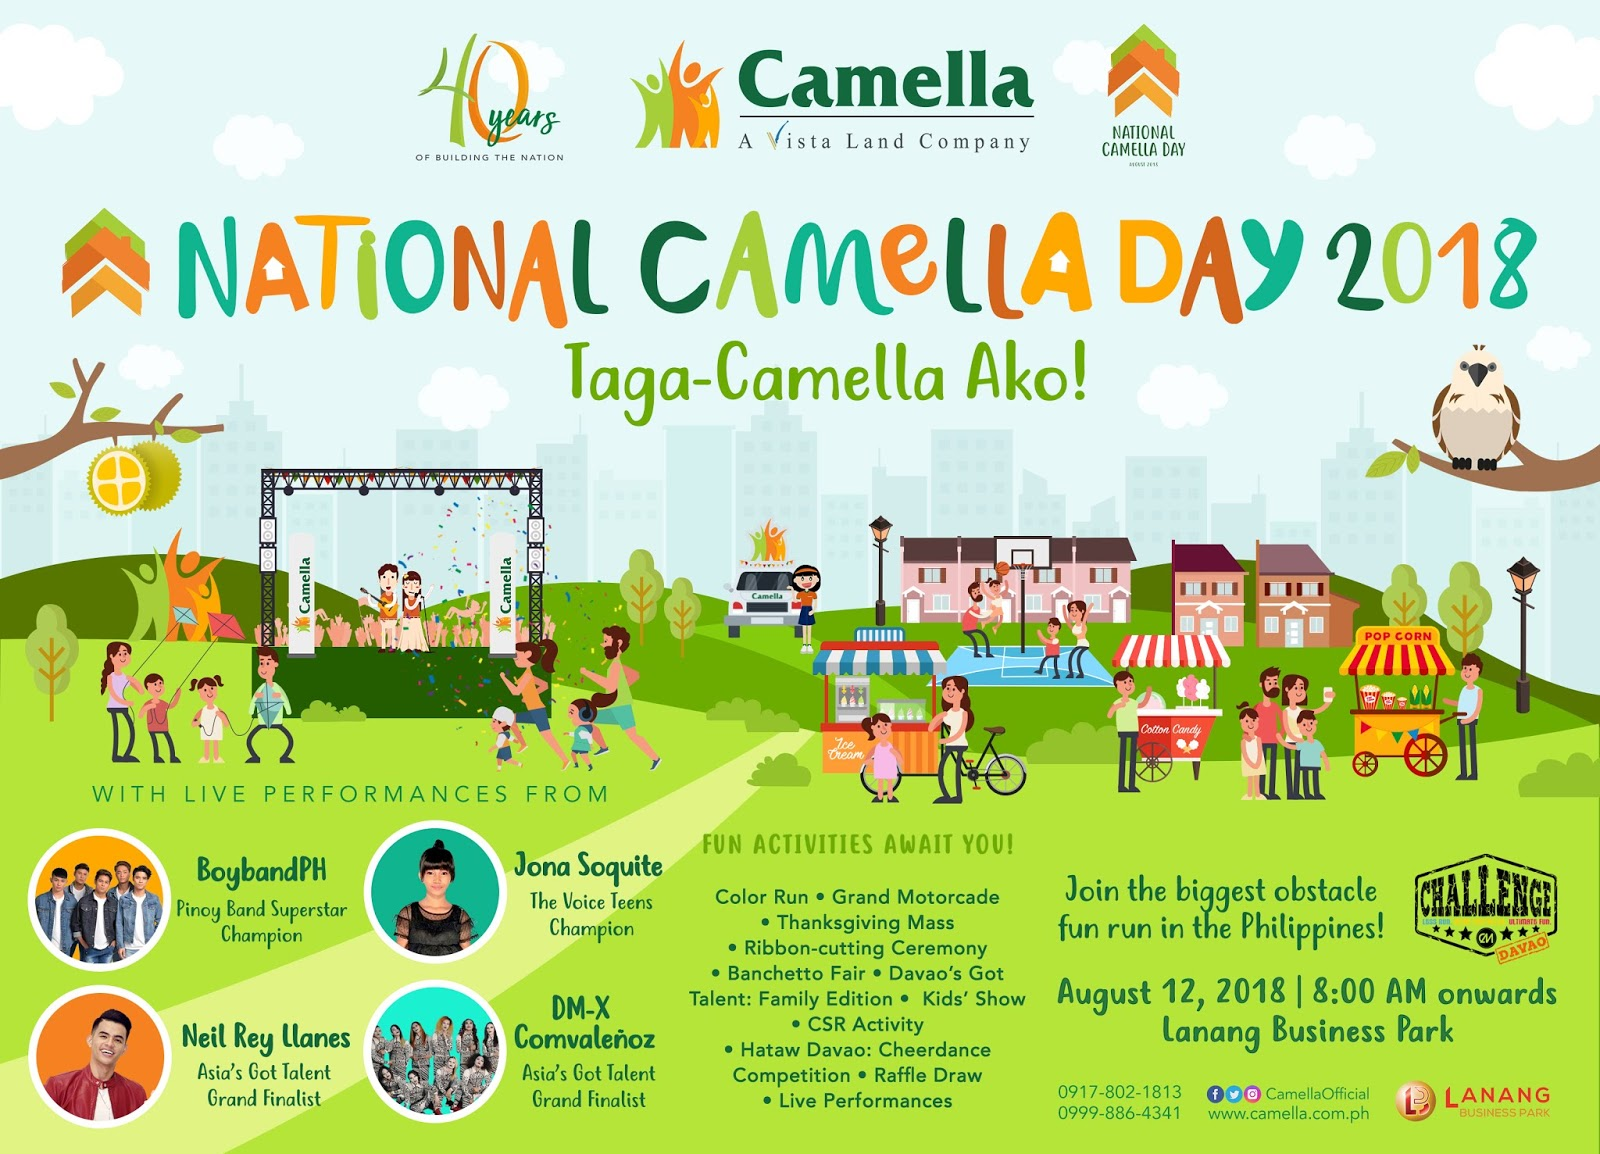 National Camella Day 2018